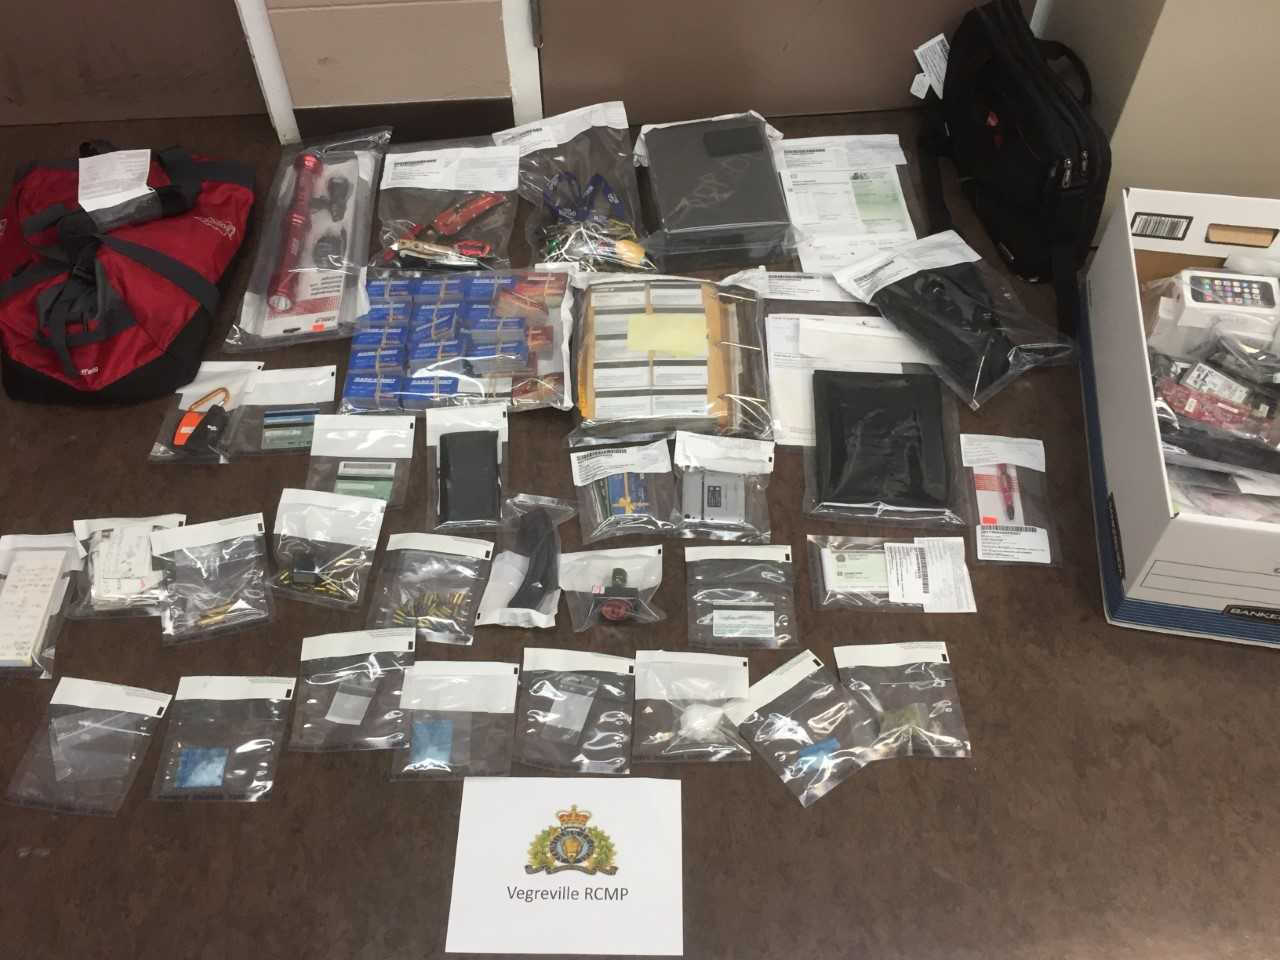 THREE PEOPLE CHARGED AFTER A TON OF STOLEN PROPERTY IS FOUND IN A CAMPER VAN NEAR VEGREVILLE